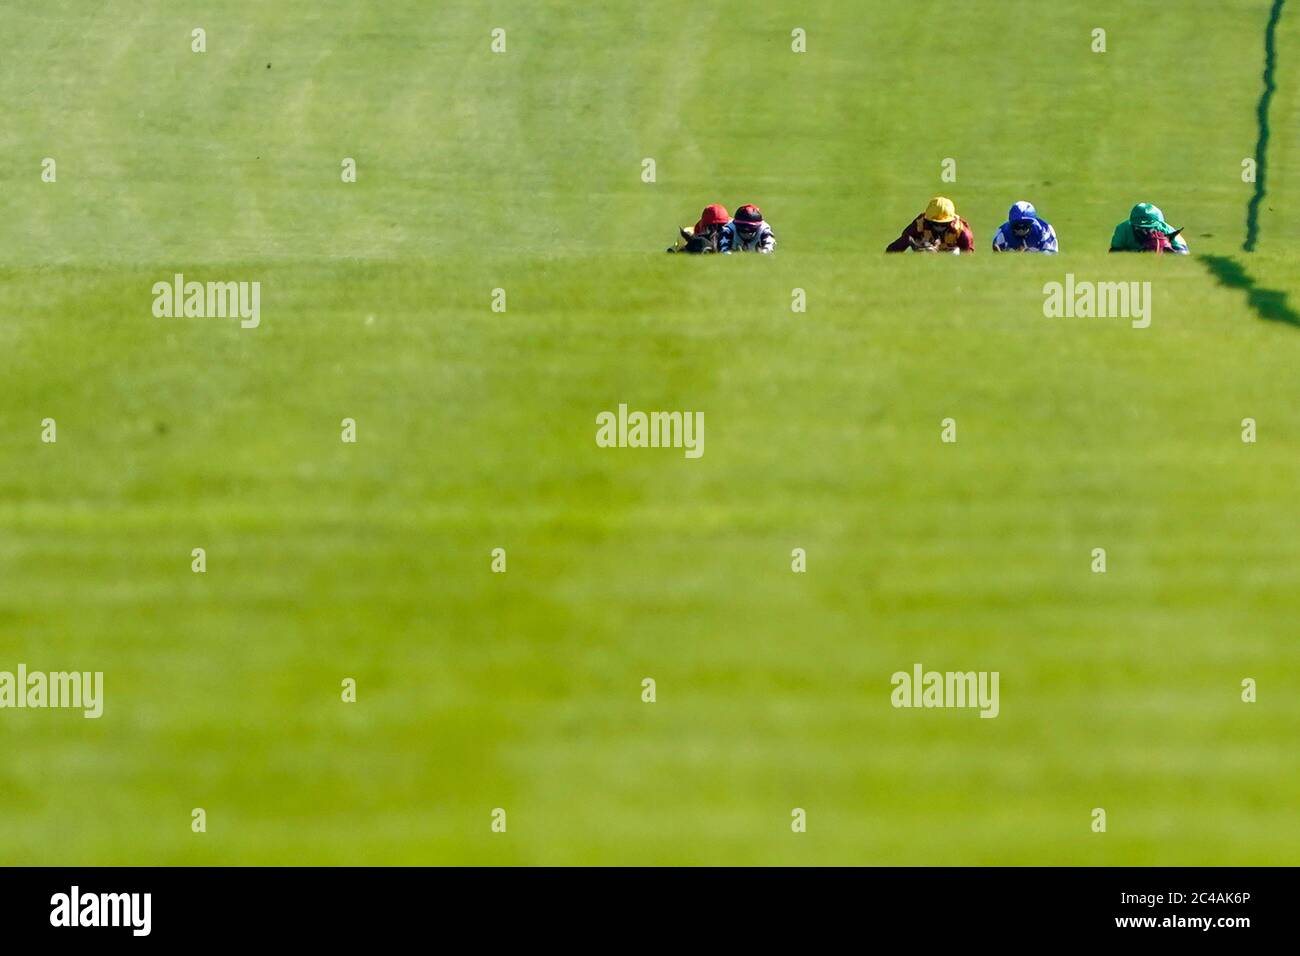 A general view of the runners in The leicester-racecourse.com Handicap at Leicester Racecourse. Stock Photo